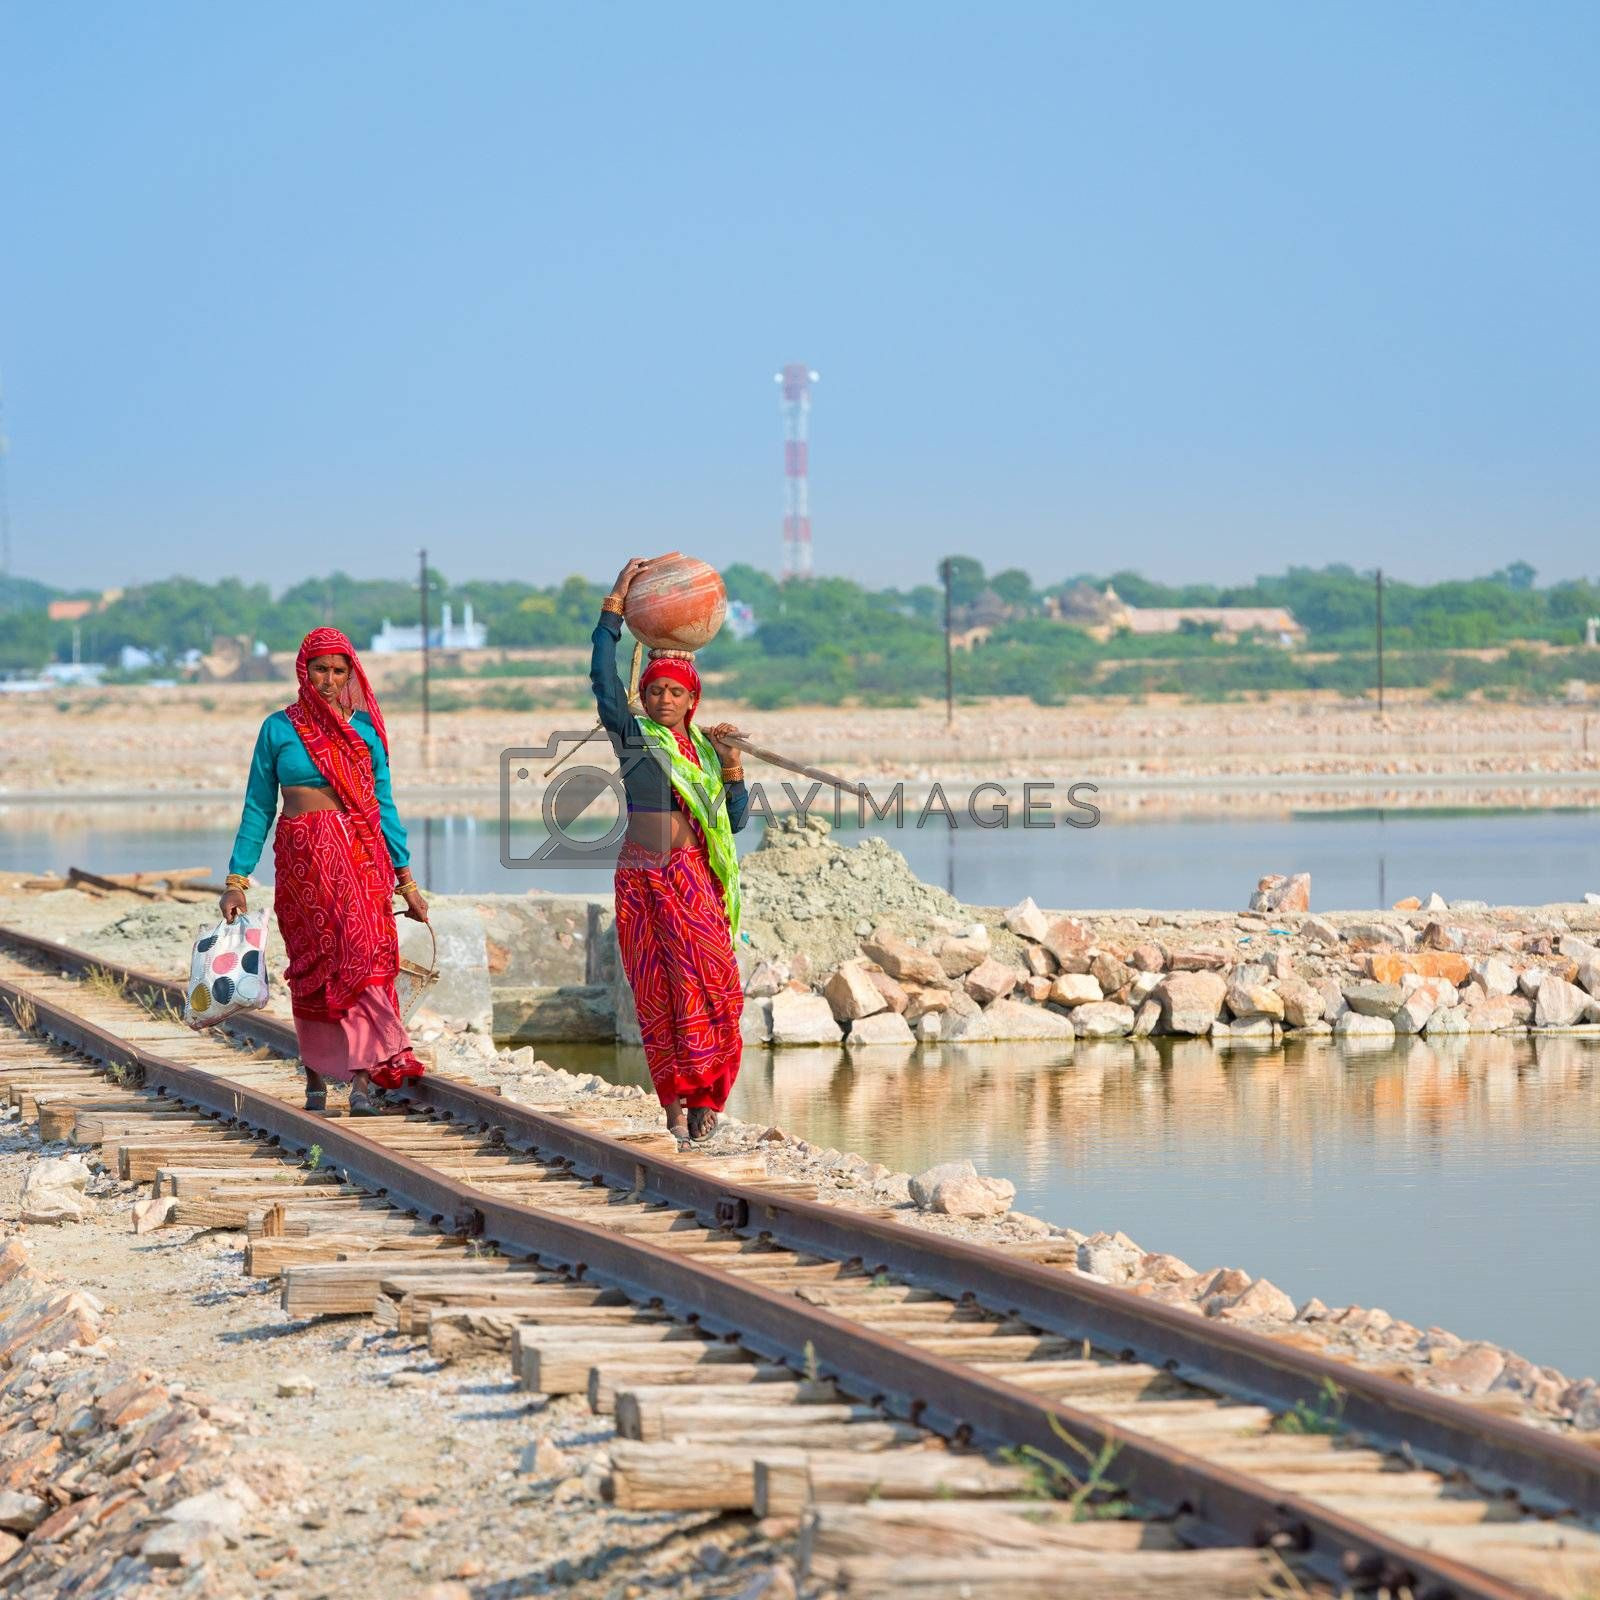 Sambhar, India - Nov 19: Female indian workers go along railway on Nov 19, 2012 in Sambhar Salt Lake, India. It is India's largest saline lake and and where salt has been farmed for a thousand years.